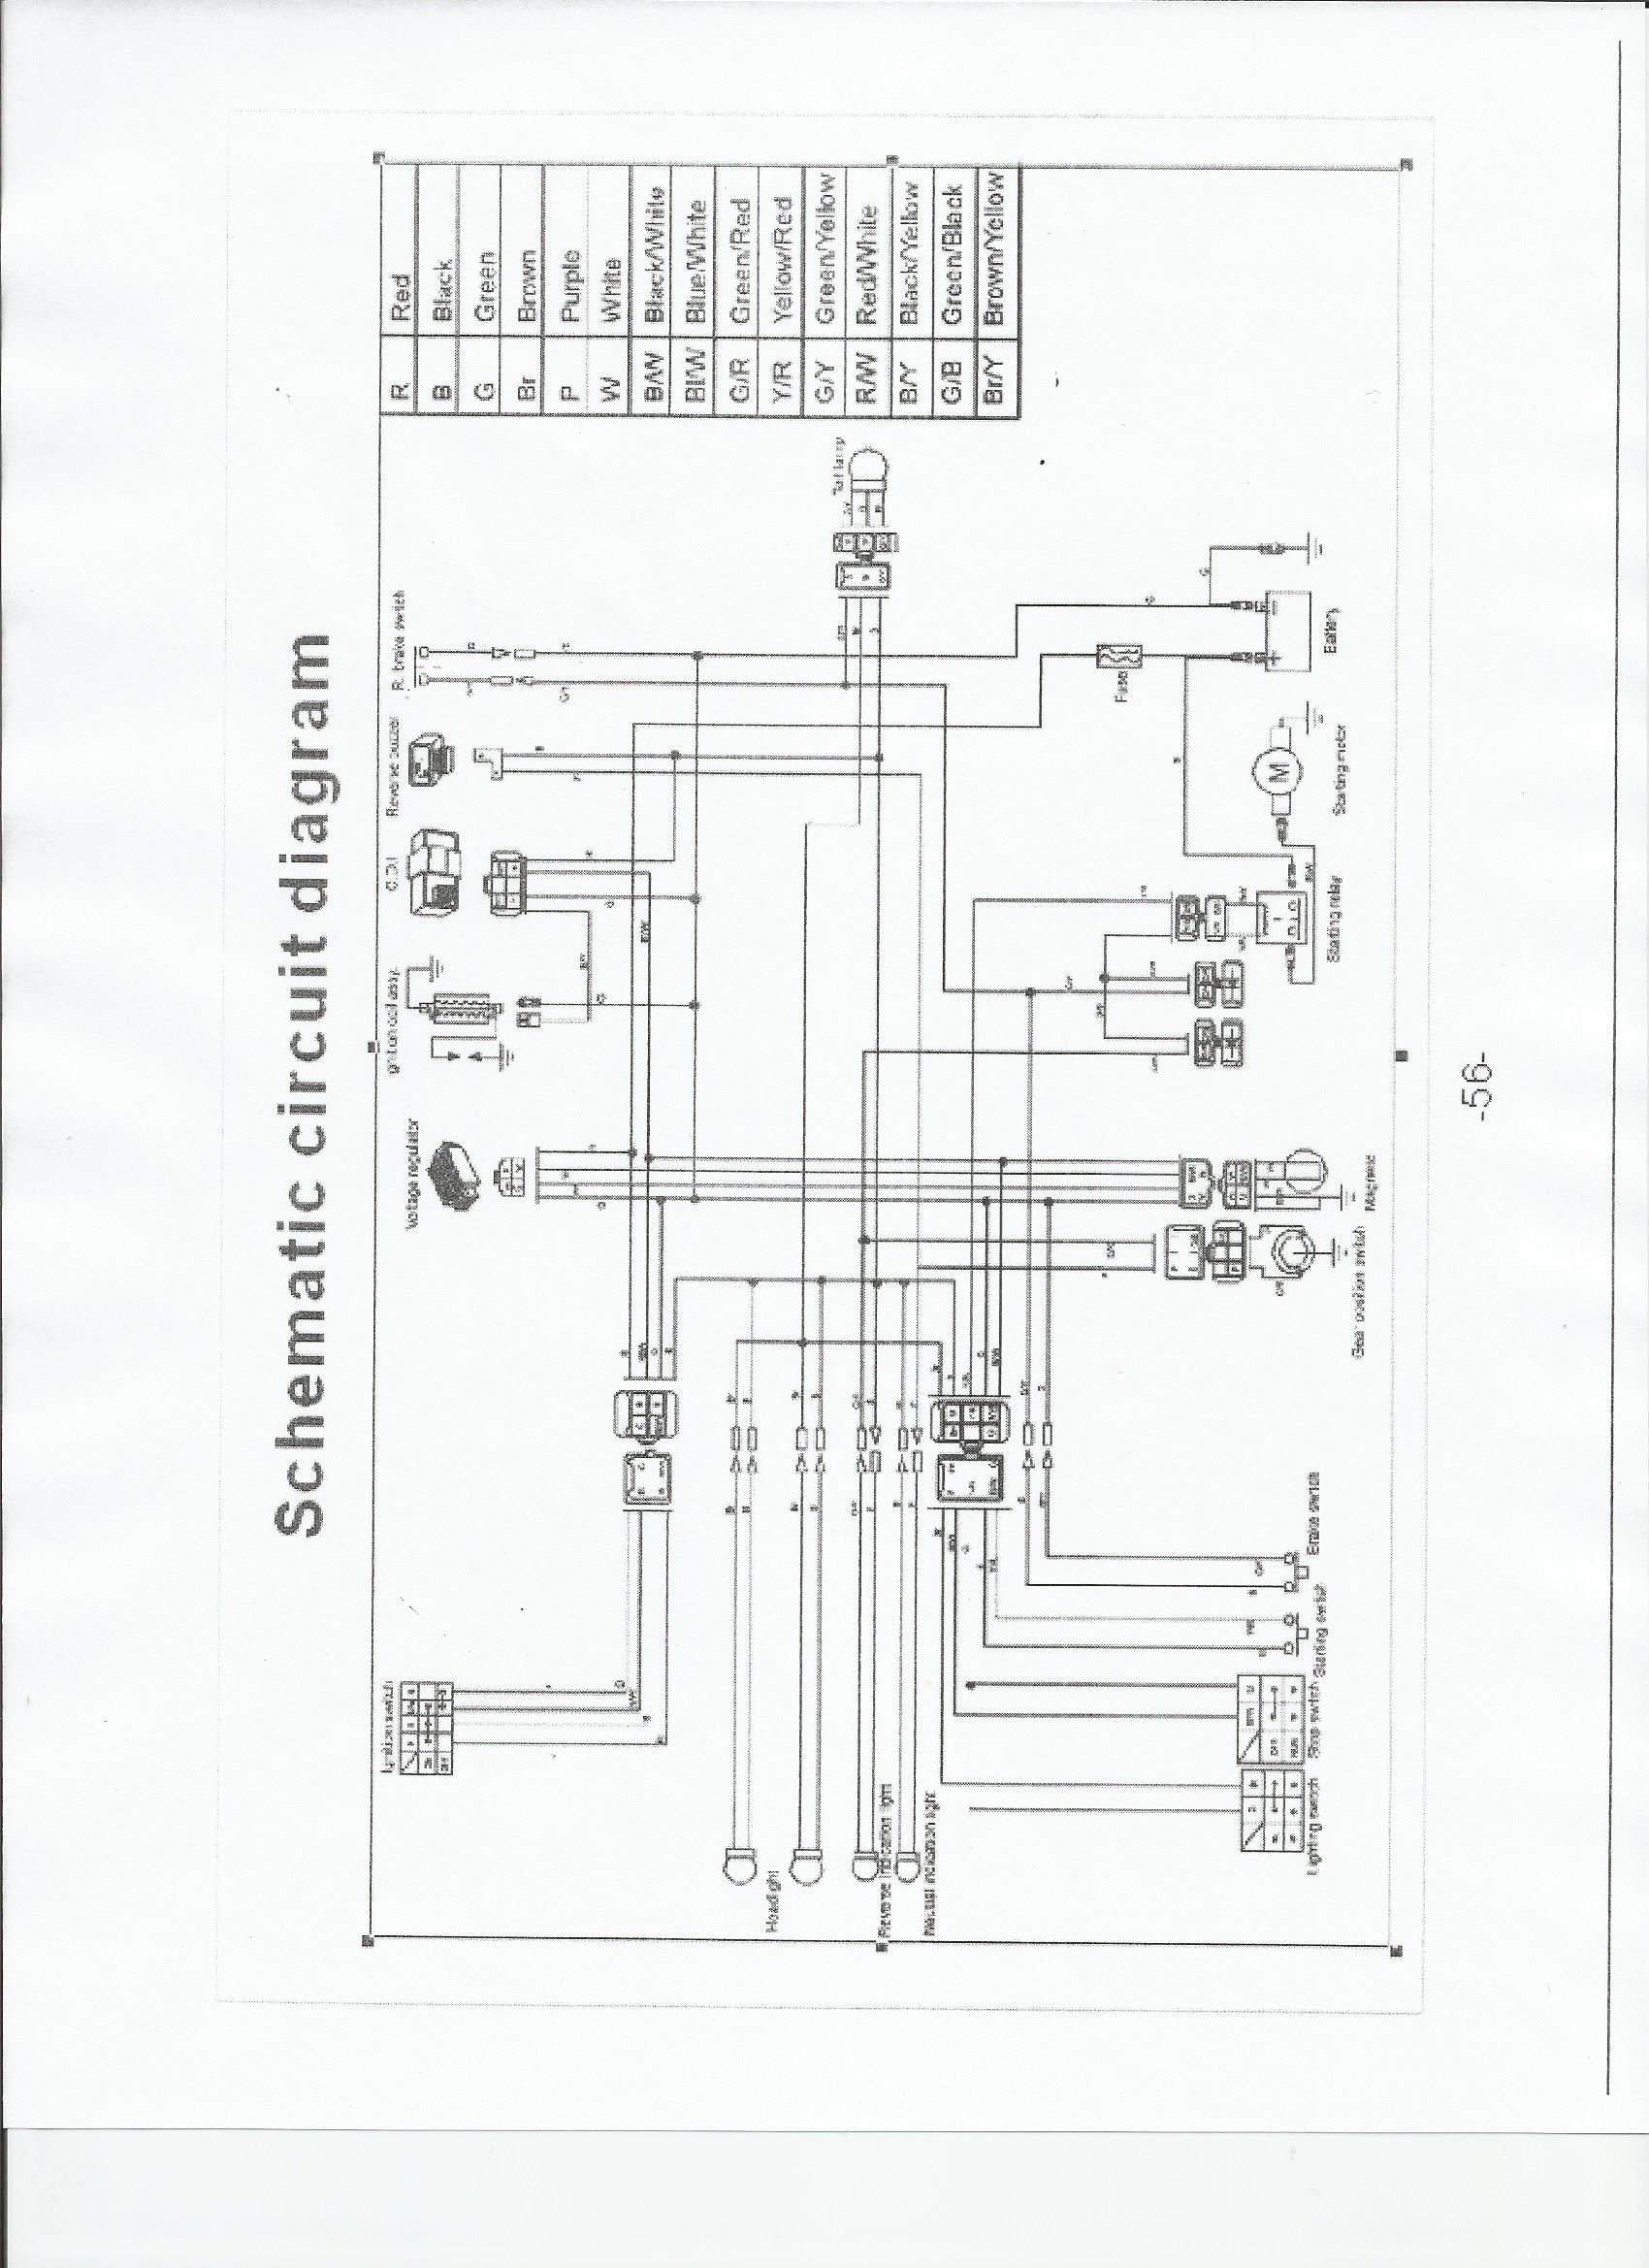 Motobravo 49cc Scooter Wiring Diagram Electrical 50cc Pocket Bike 2012 Taotao Block And Schematic Diagrams U2022 Rh Lazysupply Co